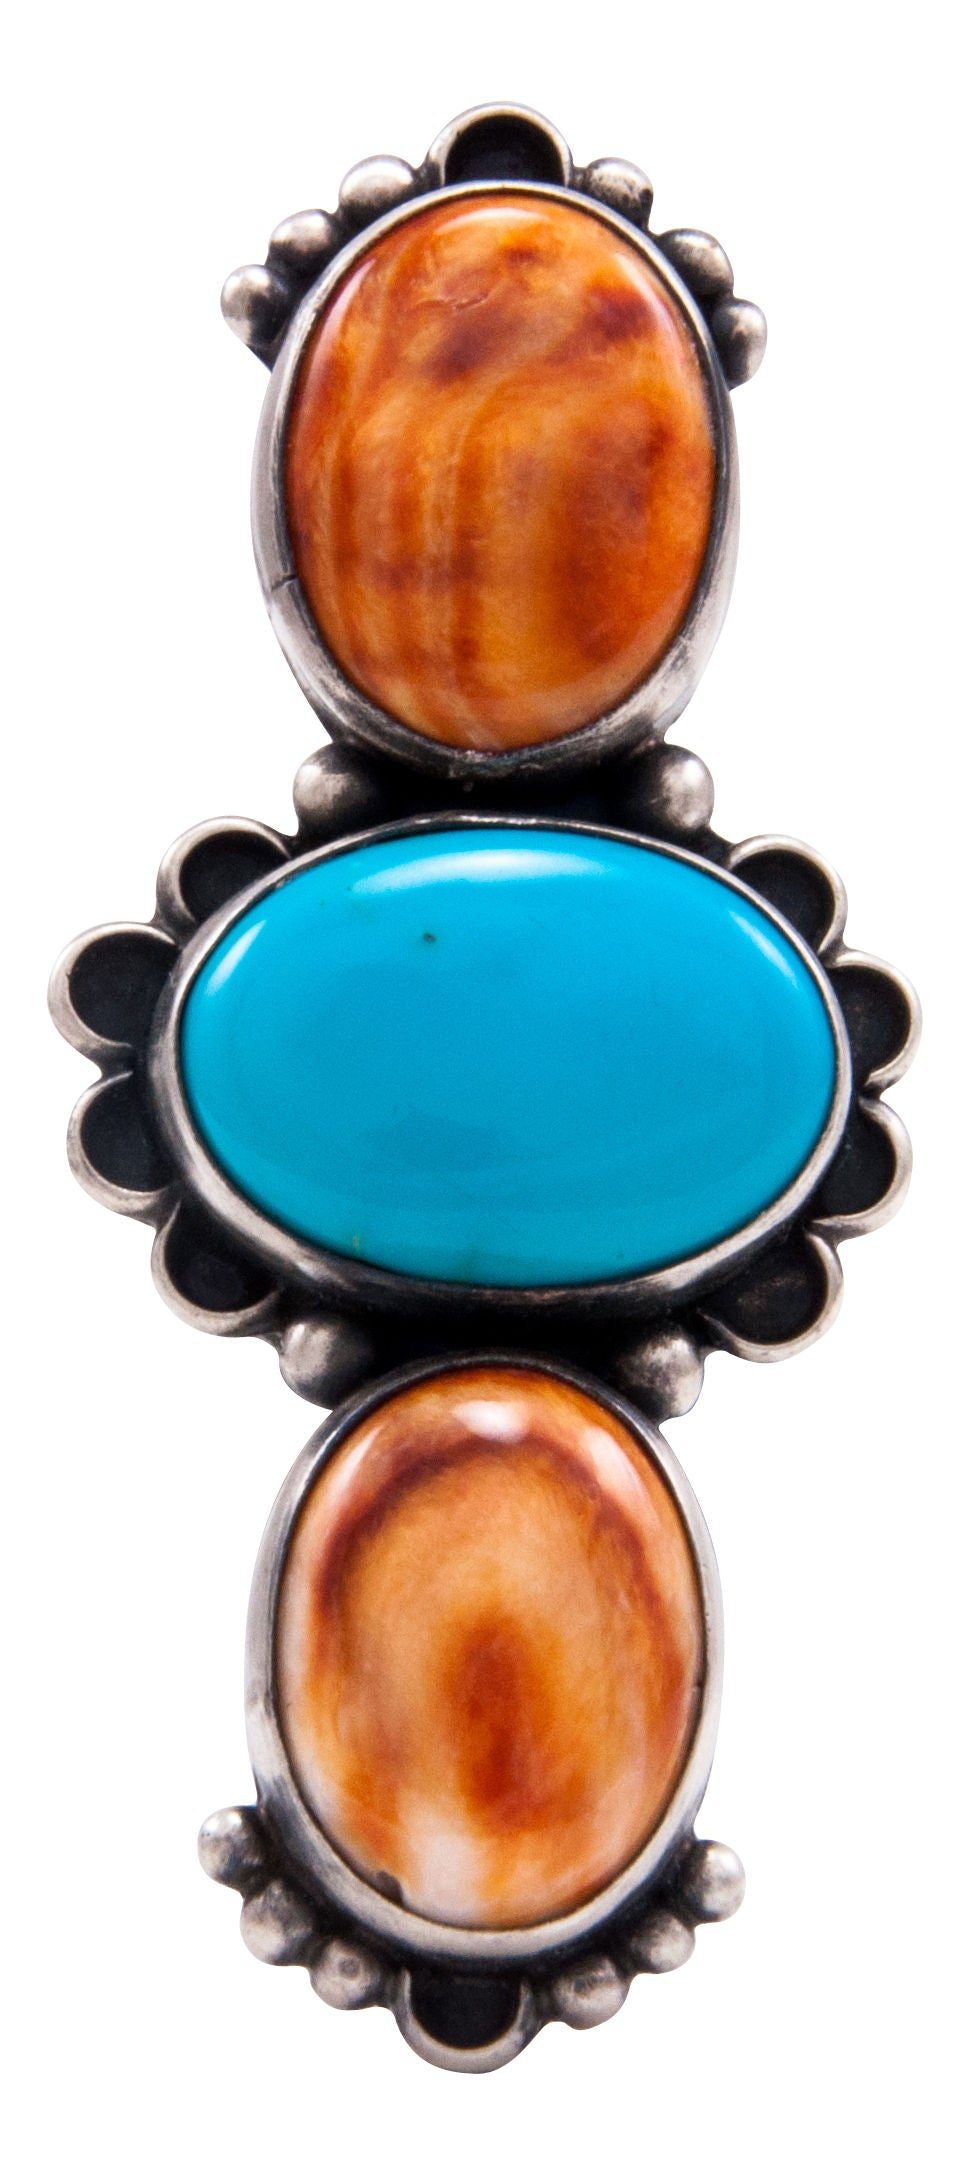 Navajo Native American Orange Shell and Turquoise Ring Size 7 by Kevin Willie SKU232078